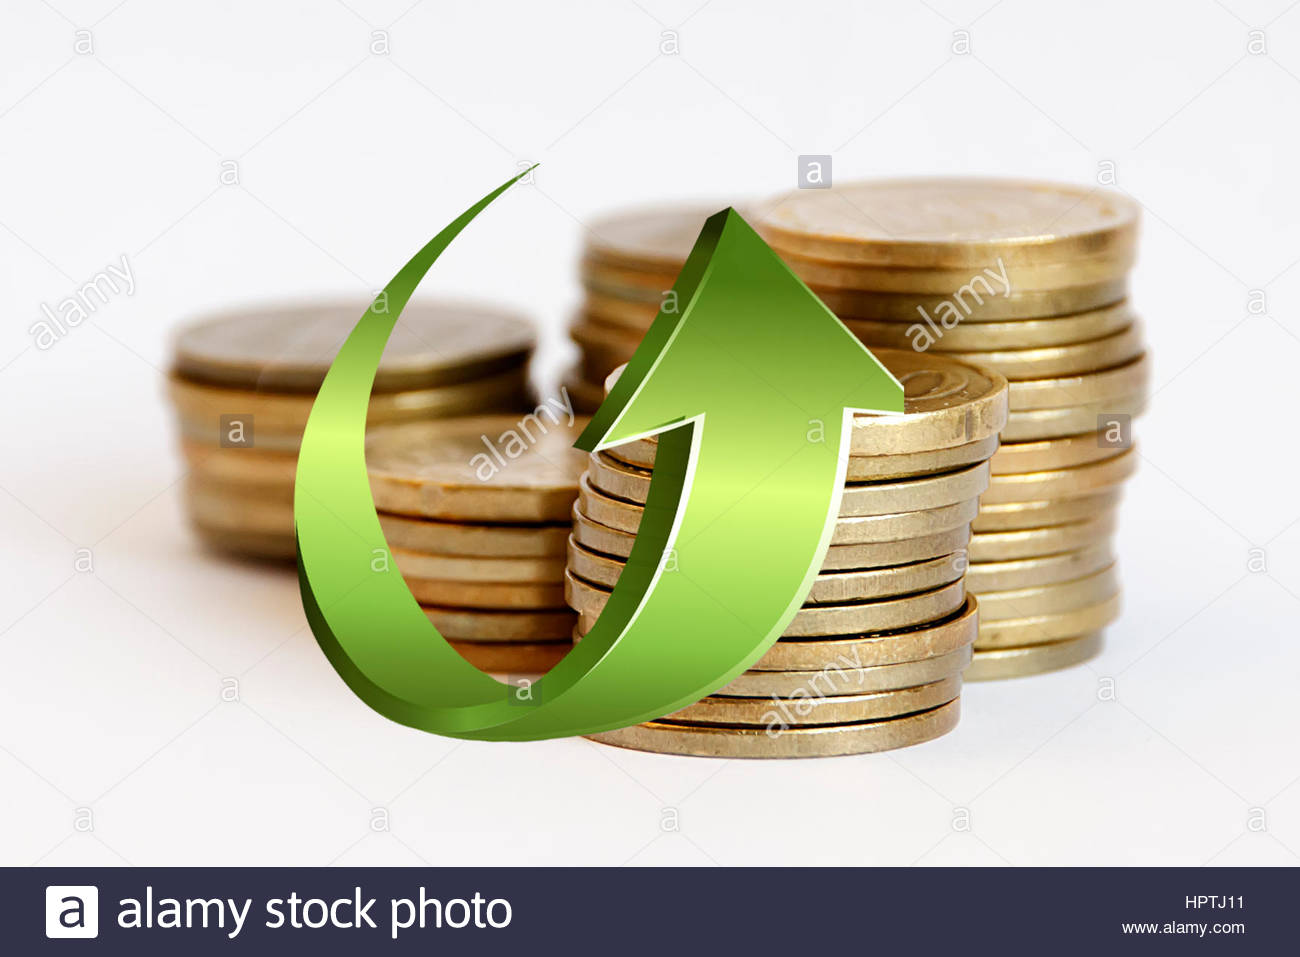 Stacks of coins with a green arrow up on them - Stock Image